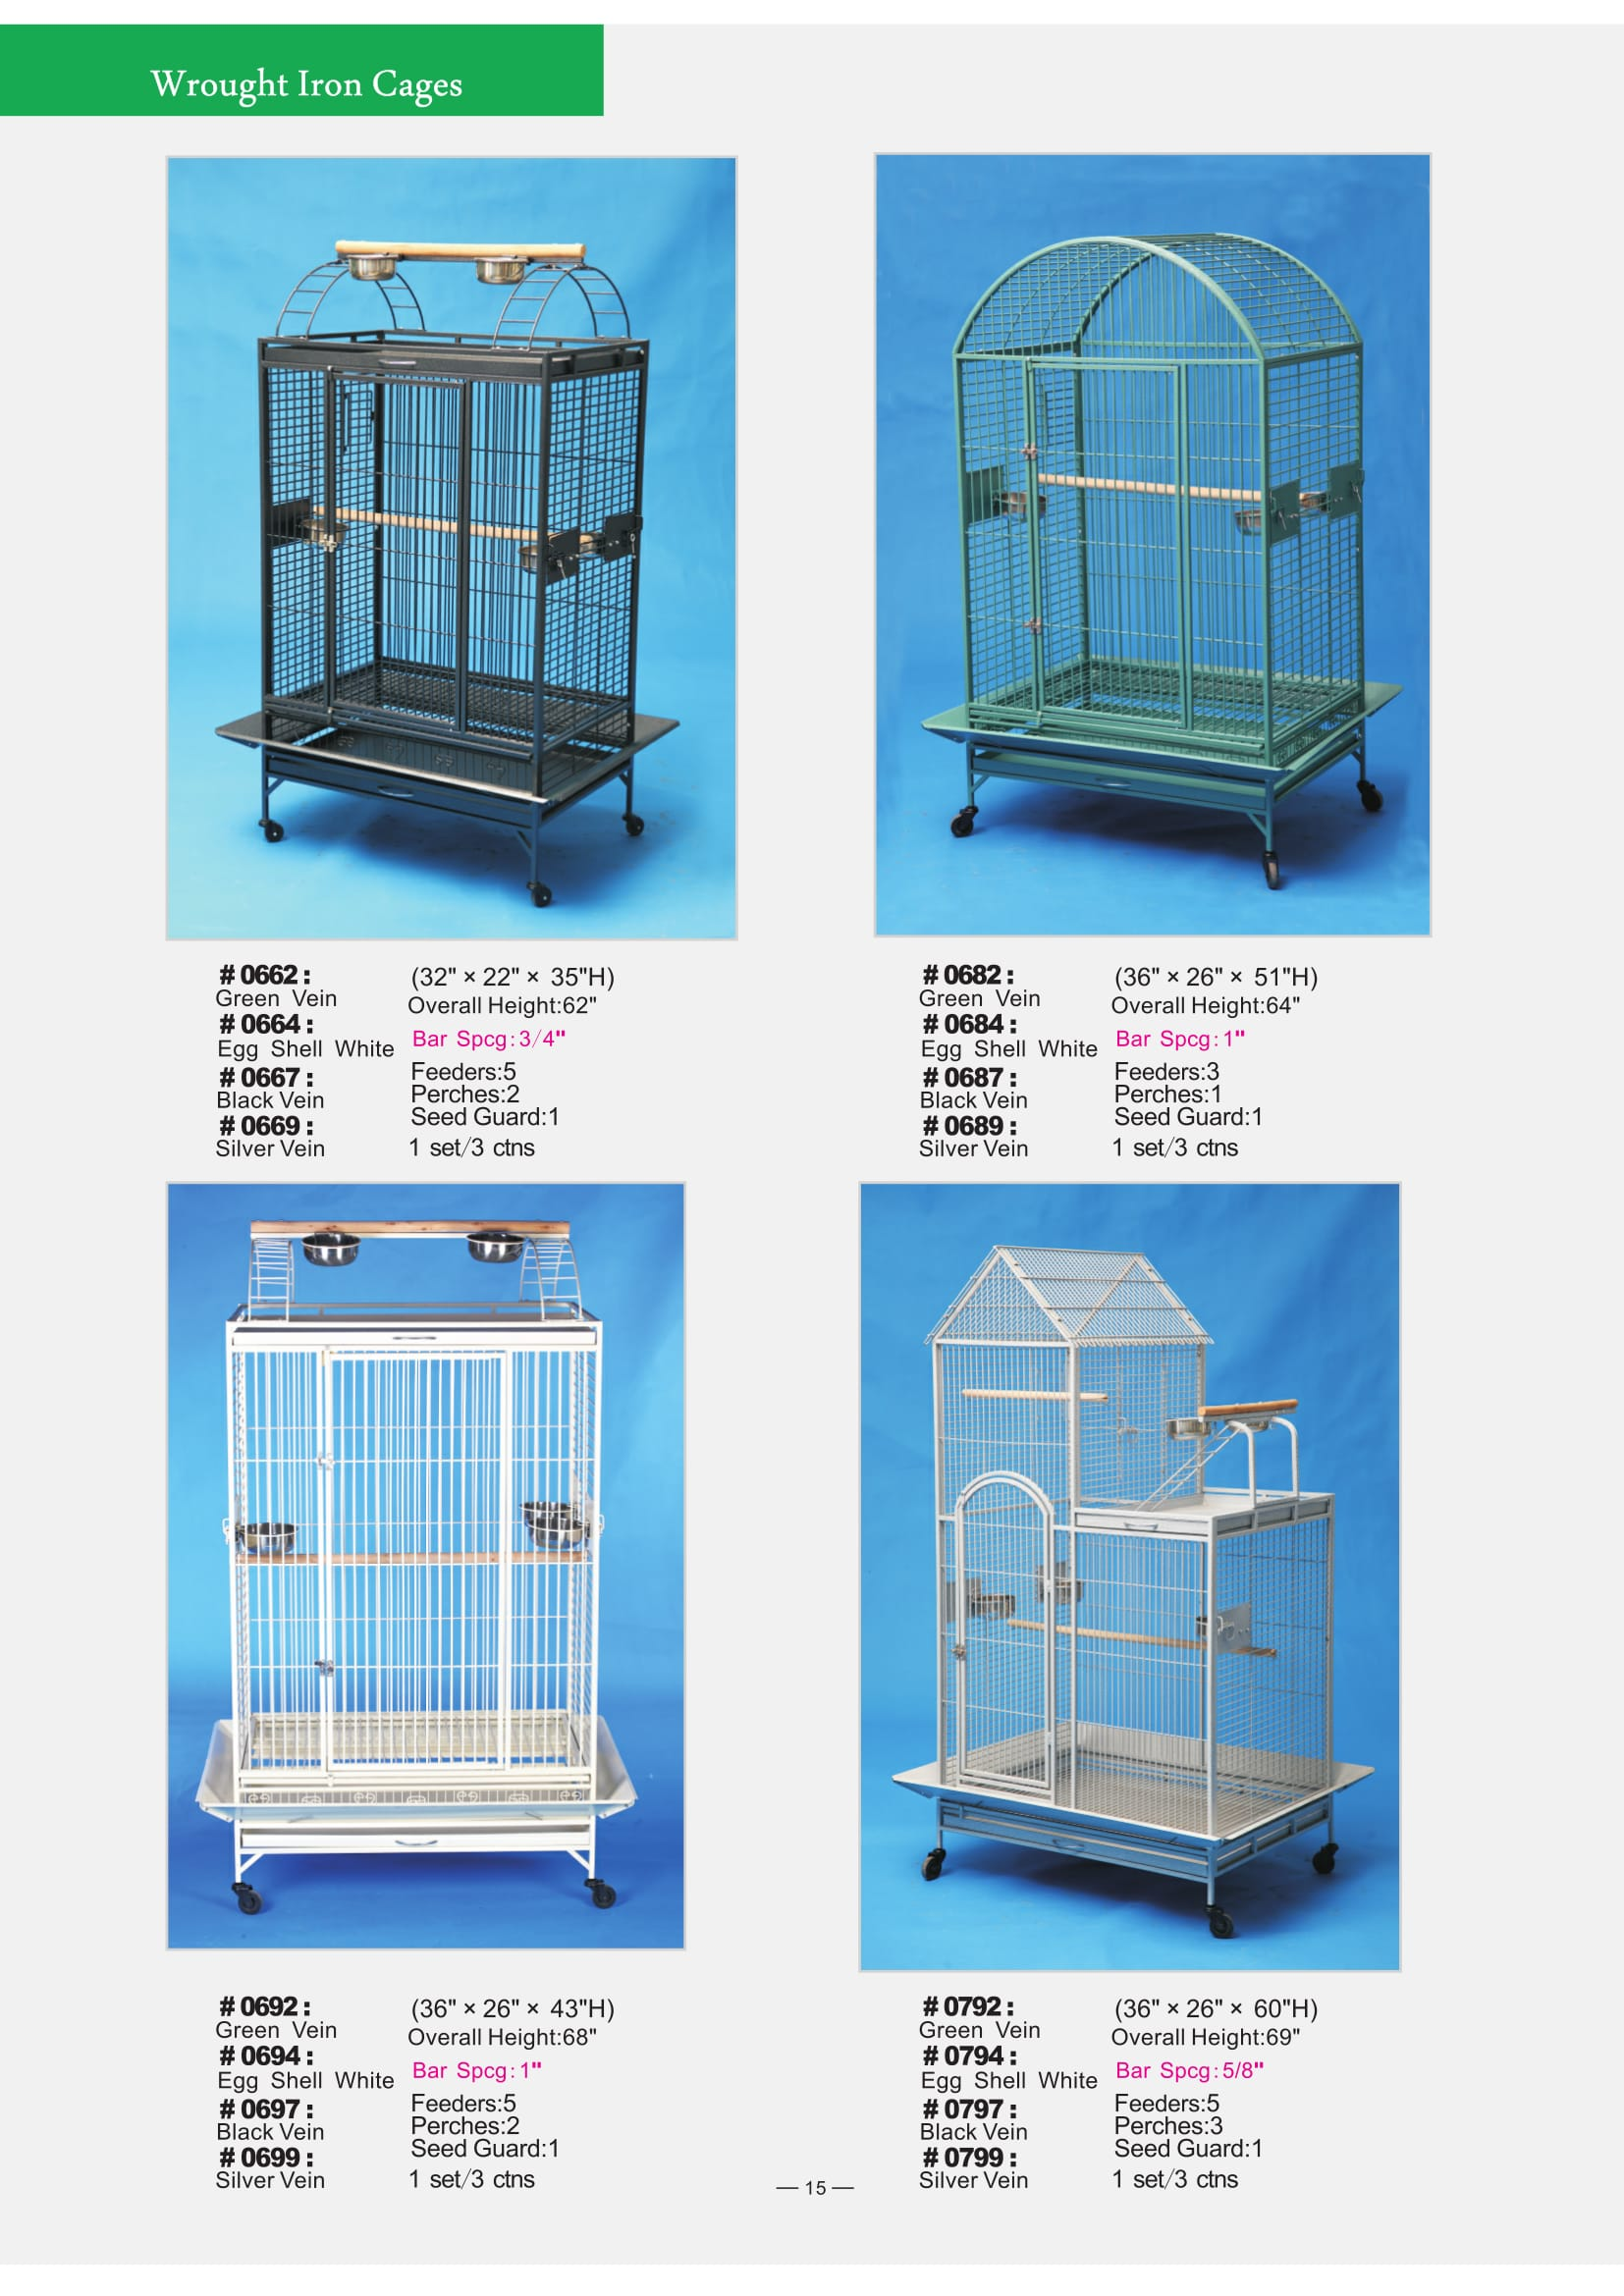 6. Wrought Iron Cages-5